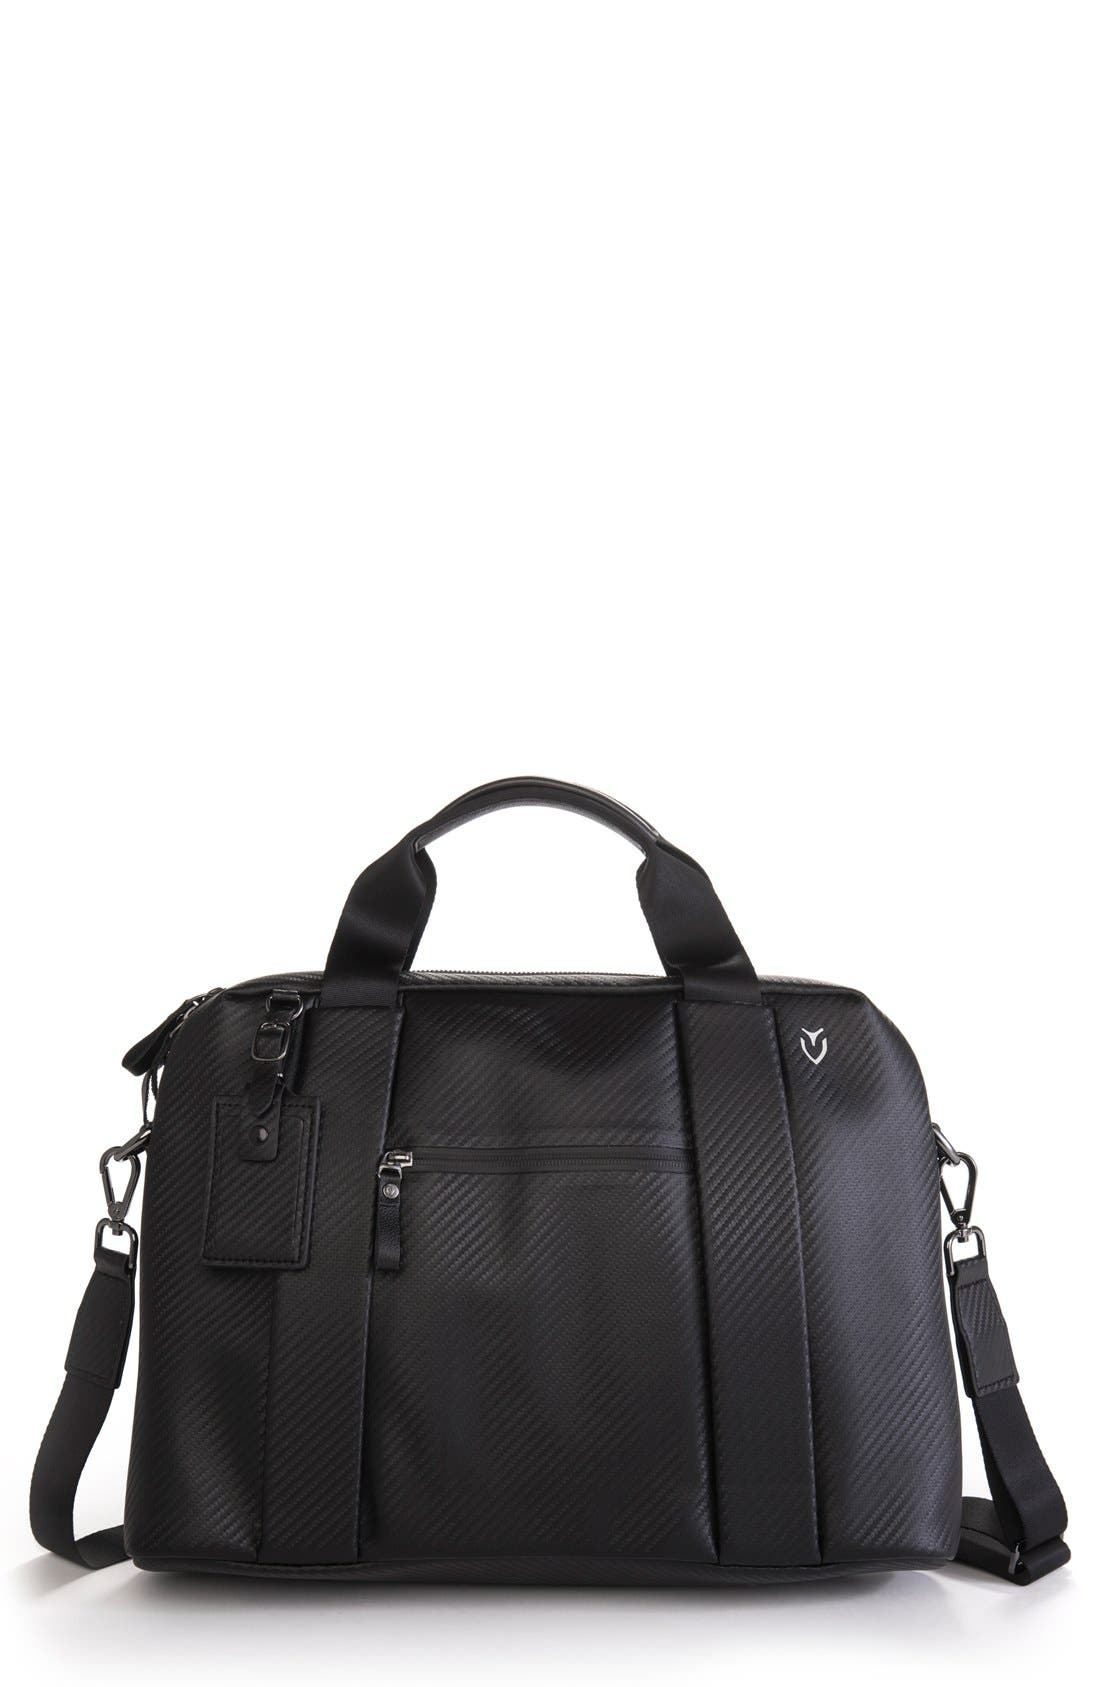 'Signature' Briefcase,                             Main thumbnail 1, color,                             Carbon Black